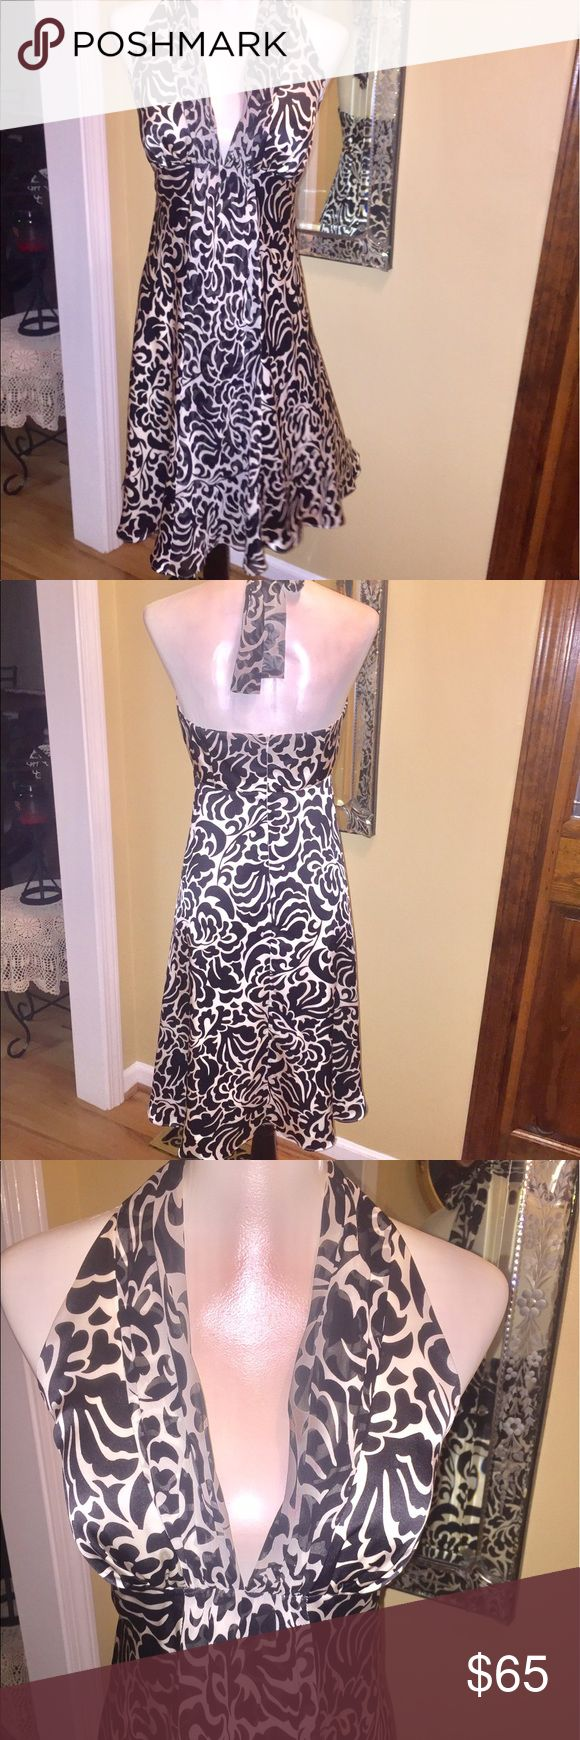 ❤️GORGEOUS White House Black Market halter dress ❤️❣️❤️GORGEOUS White House Black Market halter dress - like new excellent condition outer shear and flowy. Dry cleaned and ready to wear!!😊❤️. LOVELY IN EVERY WAY!! White House Black Market Dresses